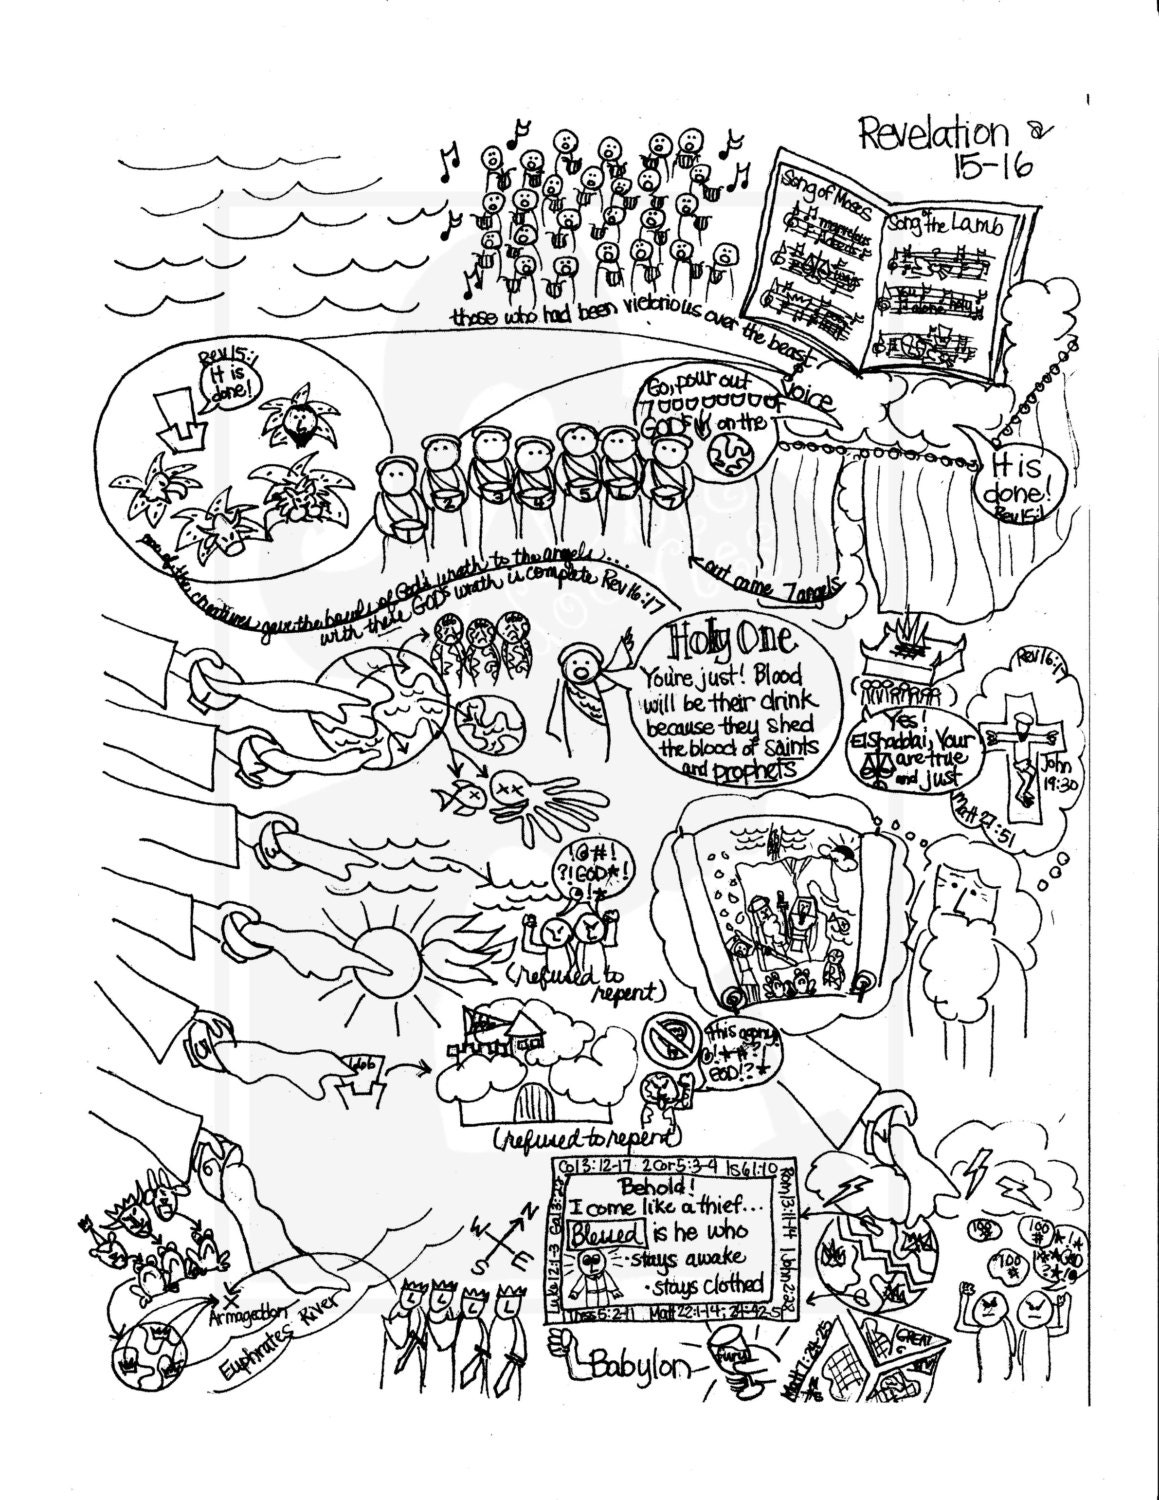 Majoras wrath coloring pages ~ Bible Doodle Study Guide for Revelation 15-16 The 7 Angels